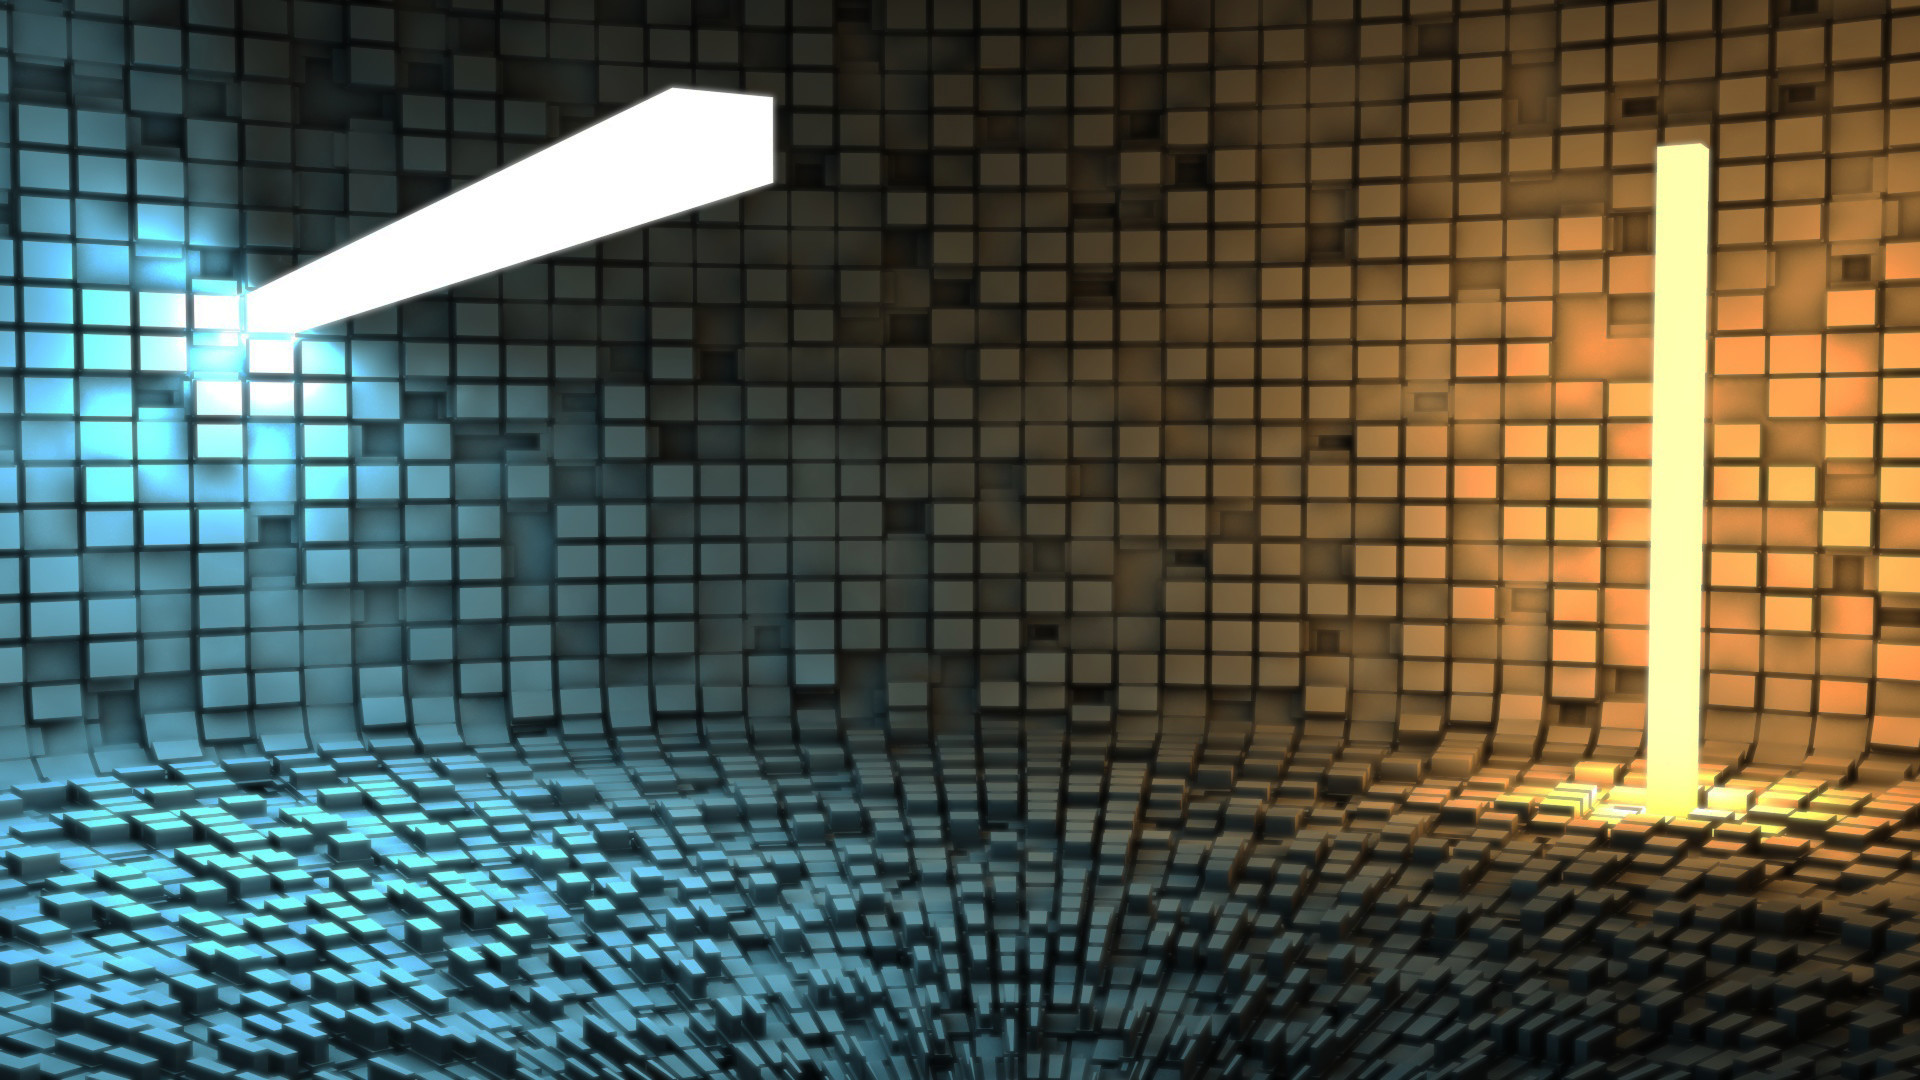 20+ Tech-tastic 3D Wallpapers To Rock Your Paltry Desktop – SolidSmack